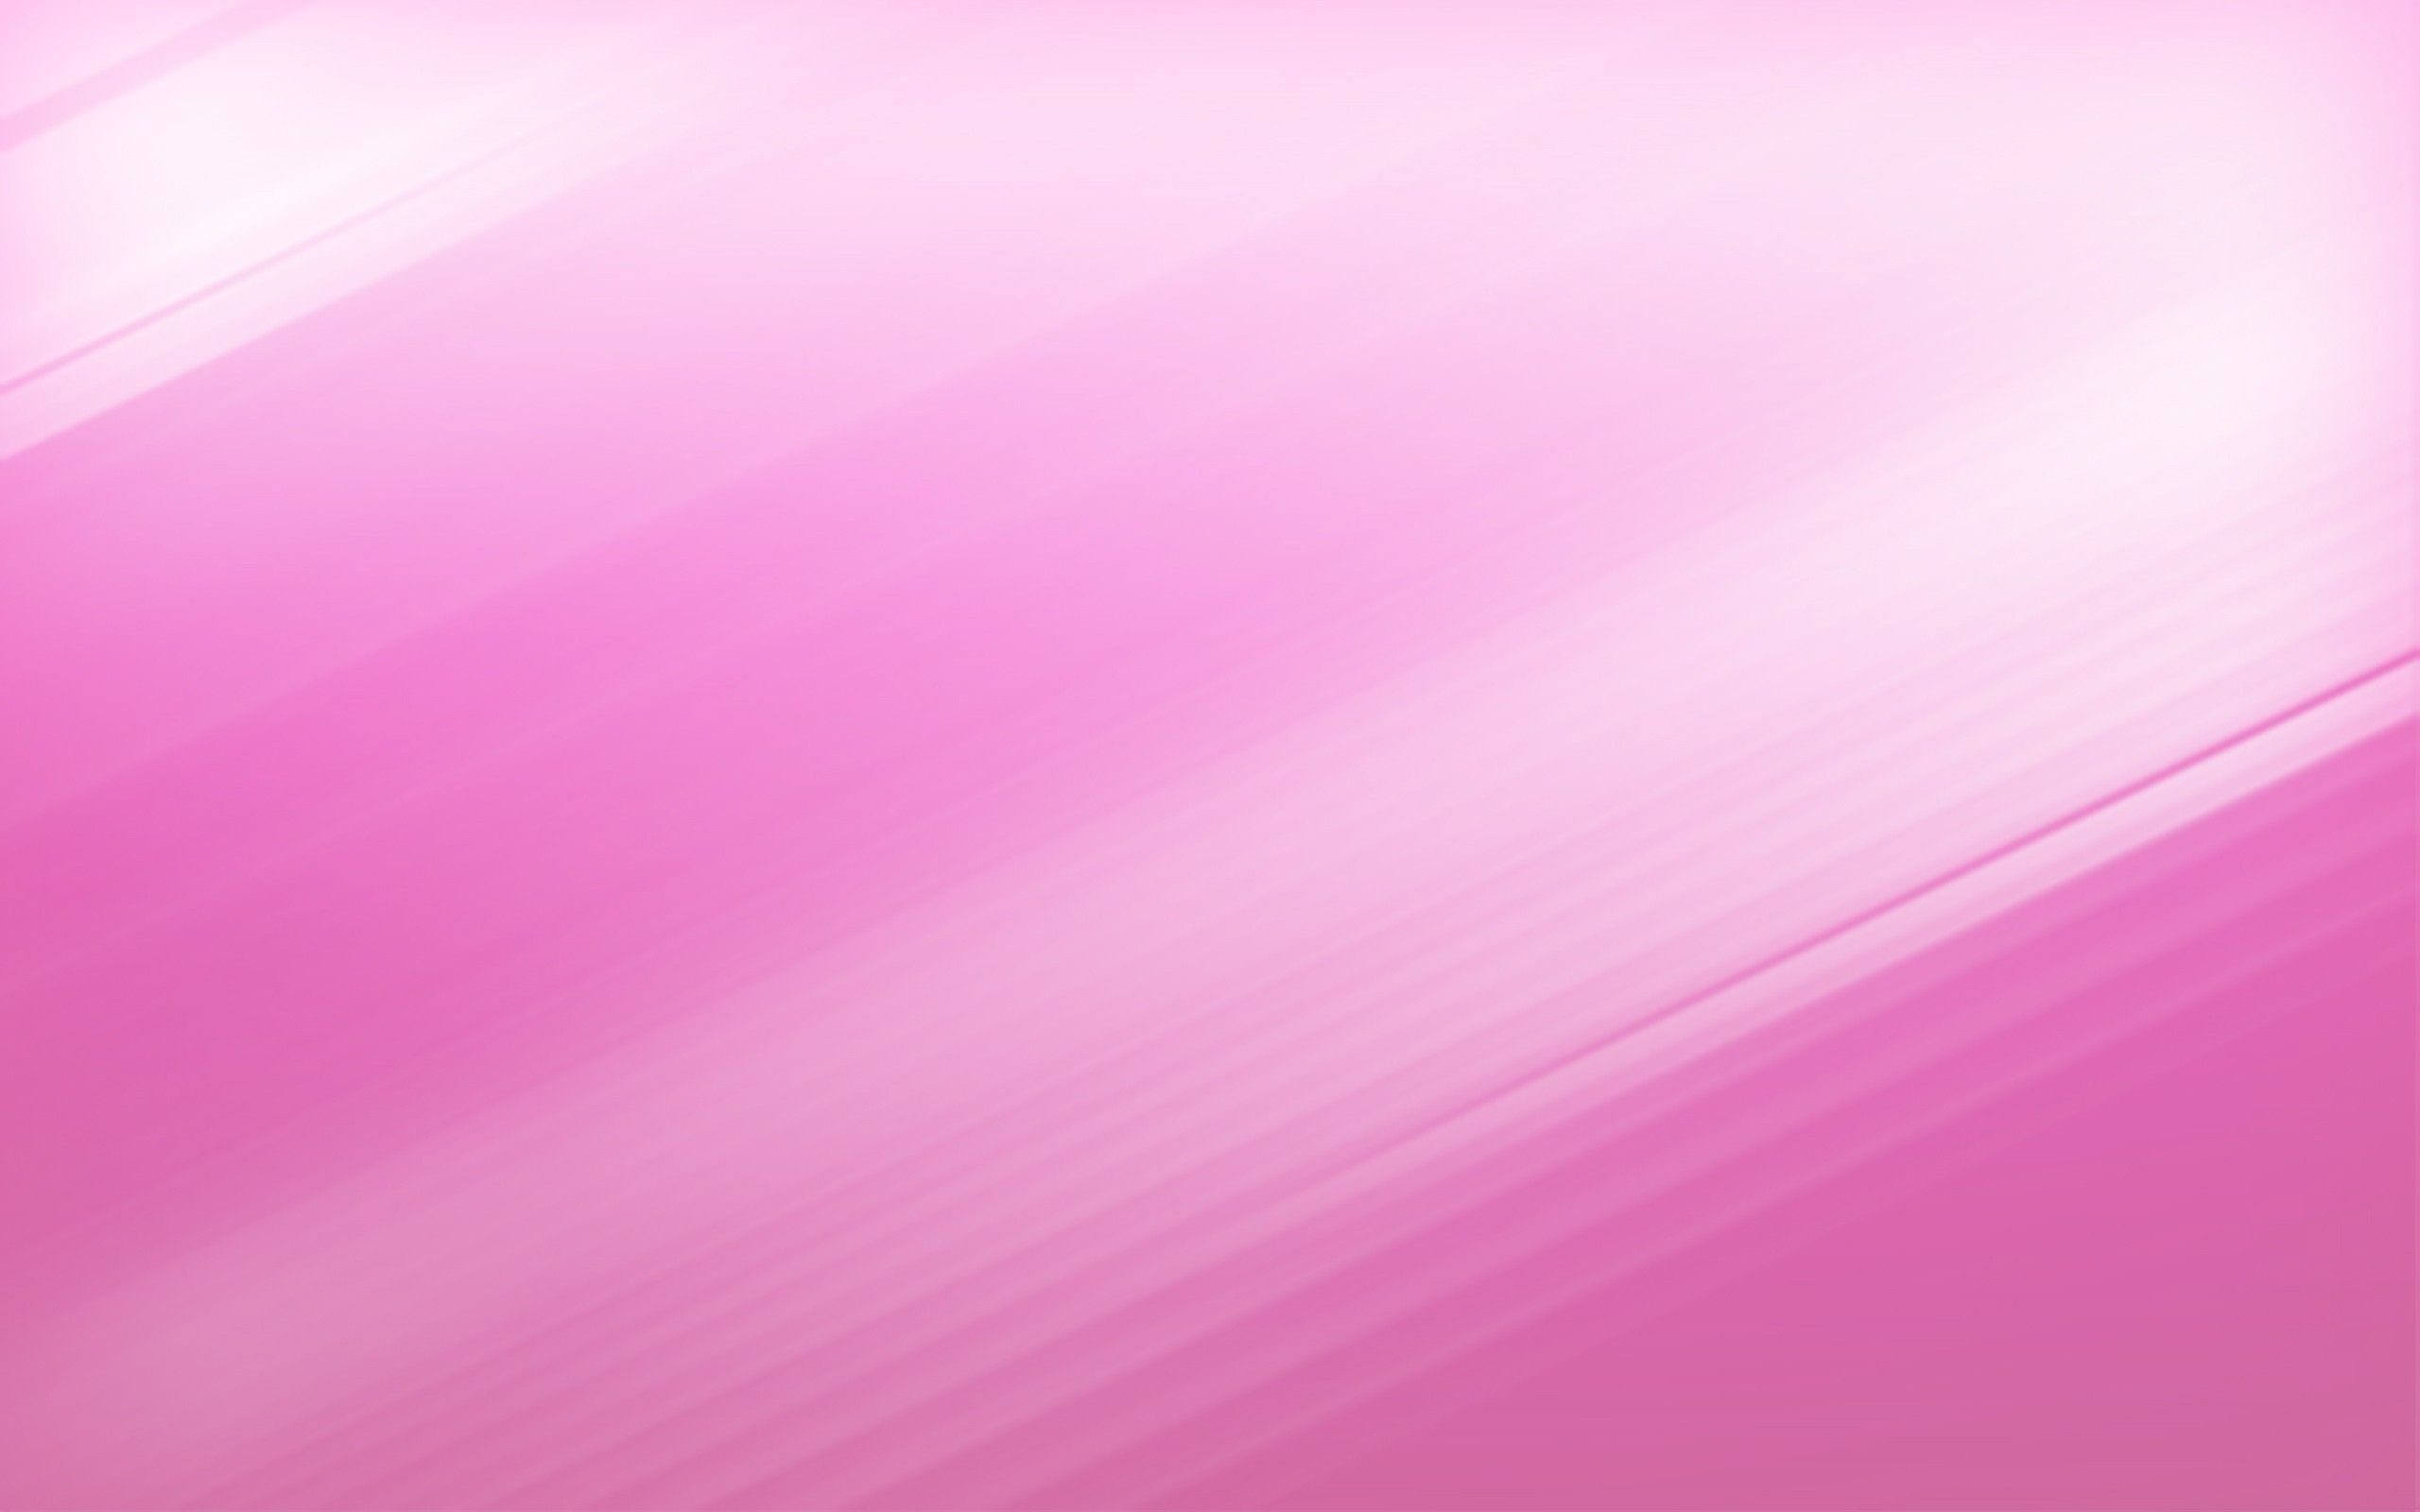 2560x1600 Wallpaper Line Light Color Angle Tone With Images